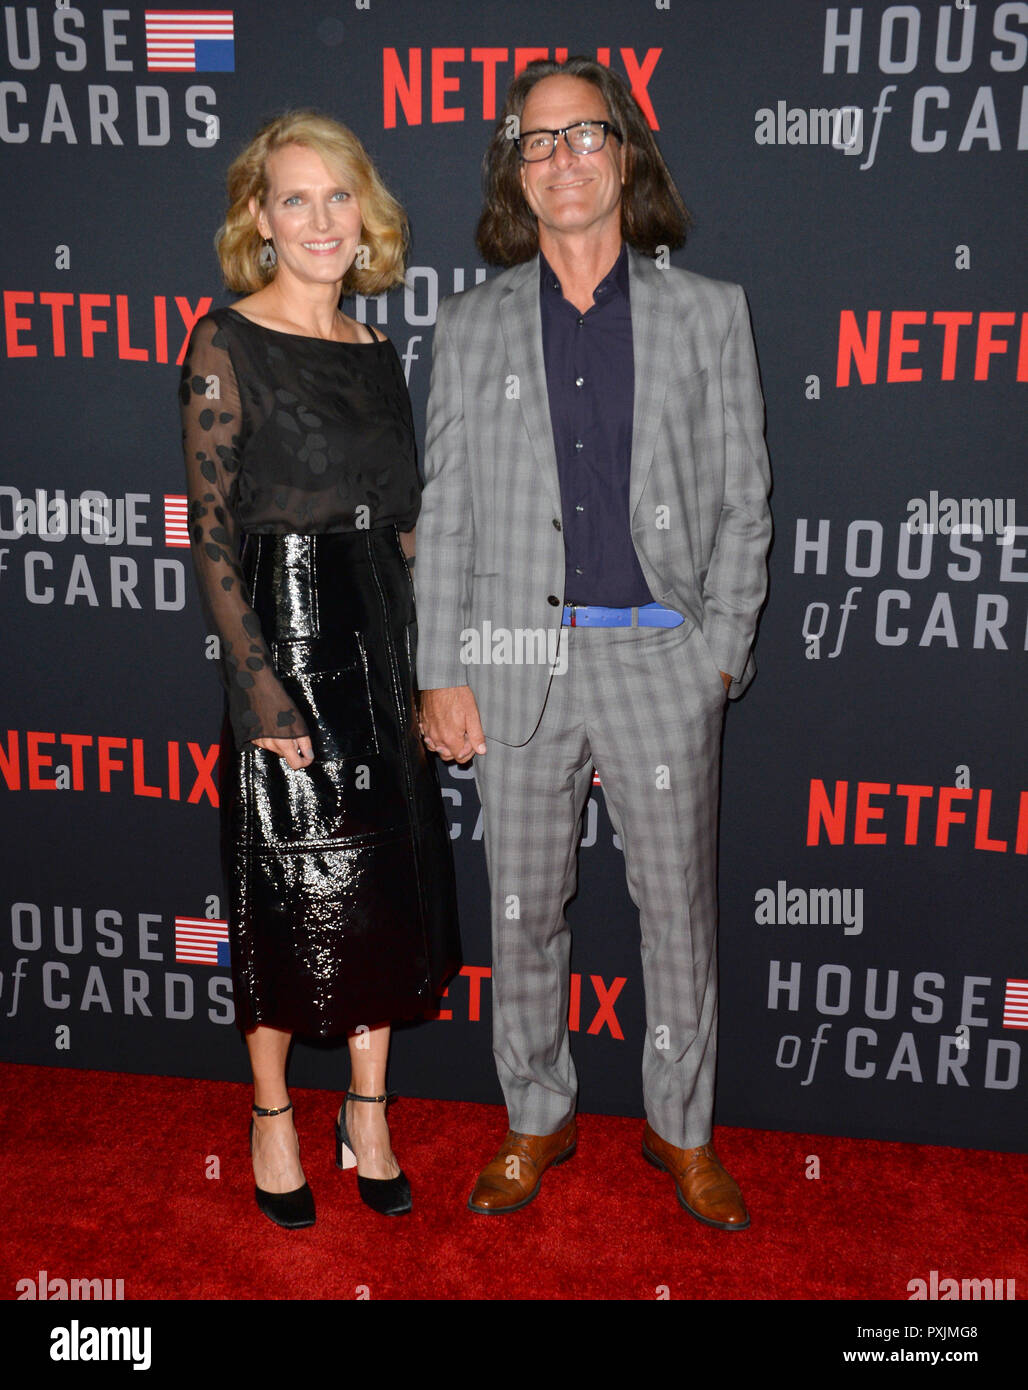 Los Angeles, California, USA. 22nd October, 2018. Melissa James Gibson & Daniel Aukin at the season 6 premiere for 'House of Cards' at the Directors Guild Theatre. Picture: Paul Smith/Featureflash Credit: Paul Smith/Alamy Live News - Stock Image